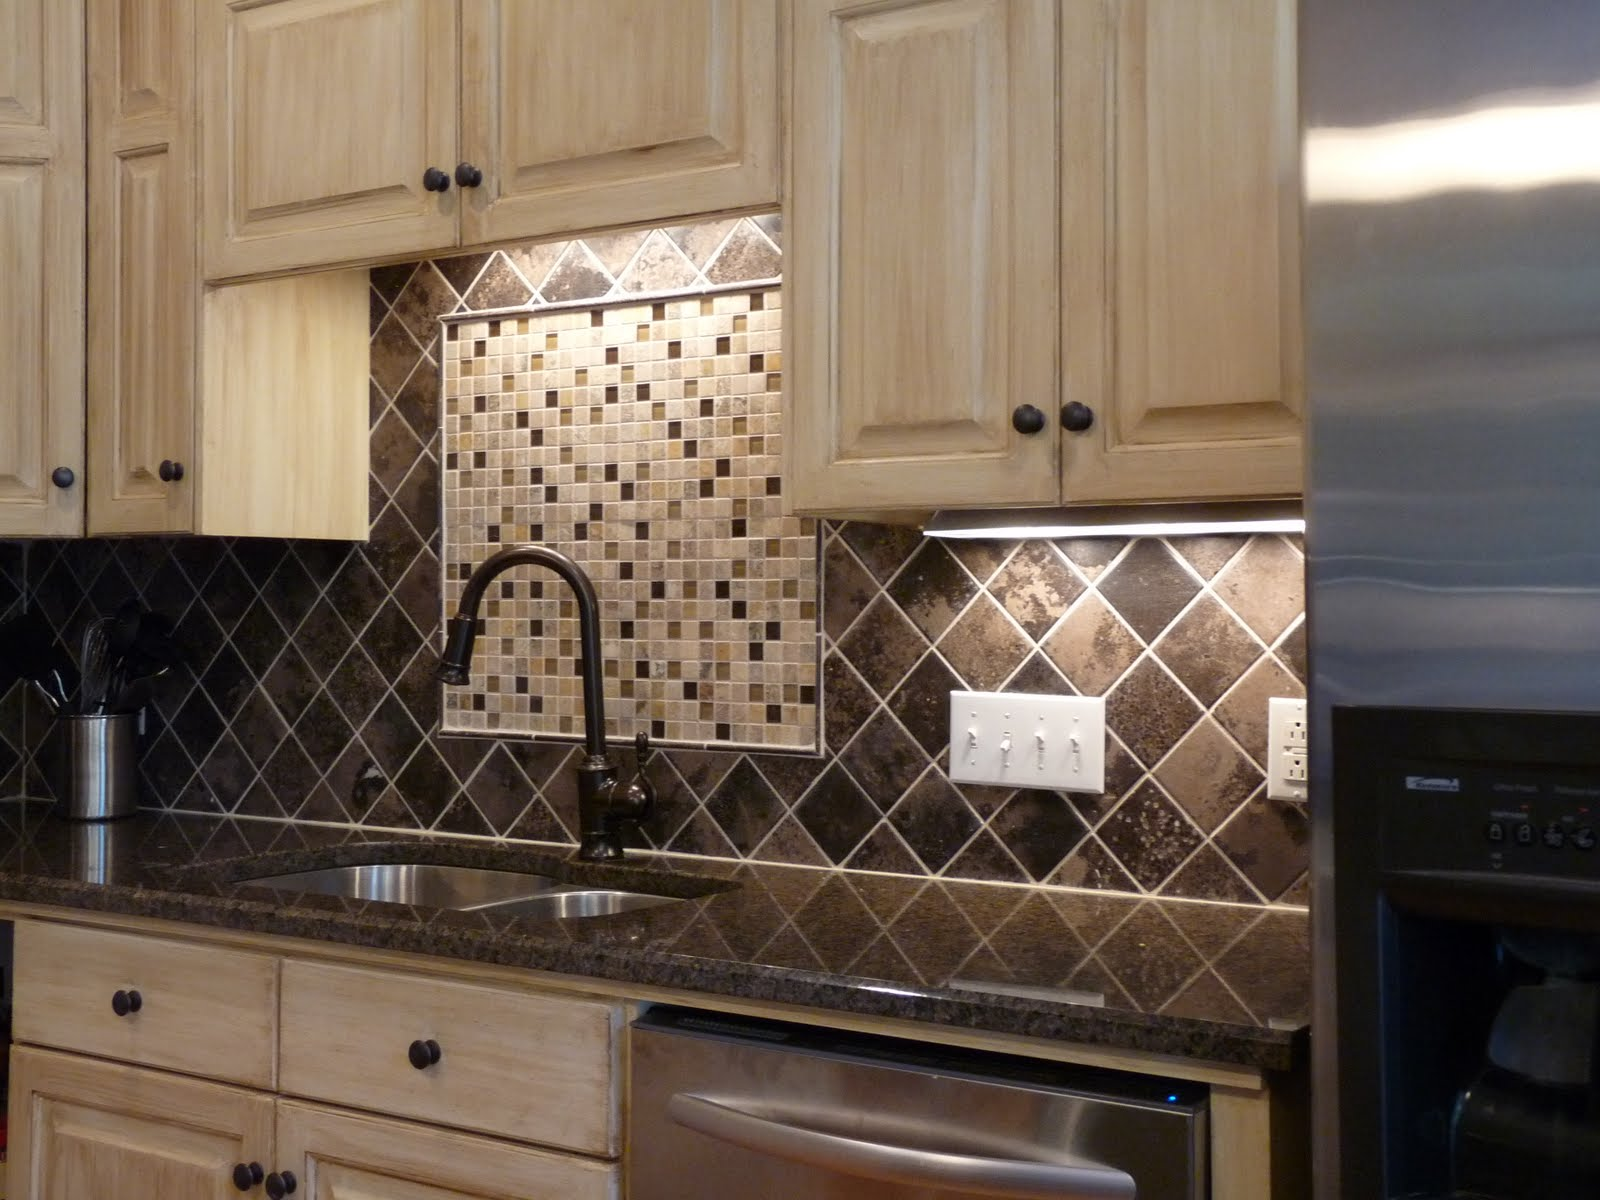 Kitchen Facelift Before And After Brushed Nickel Faucets Case Handyman & Remodeling